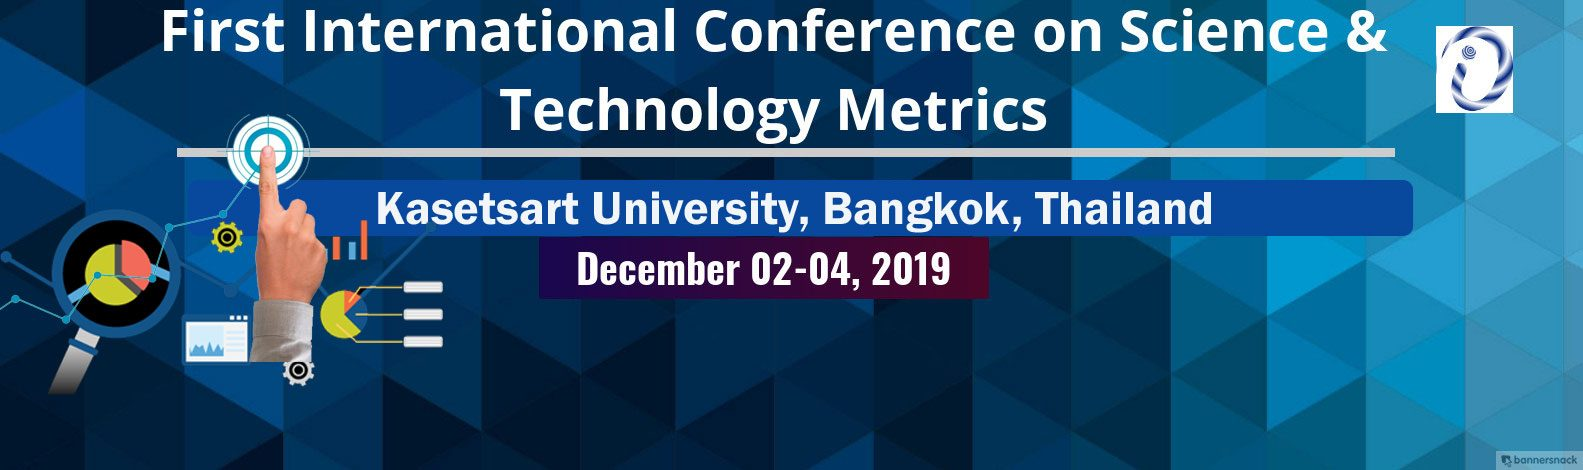 First International Conference on Science & Technology Metrics